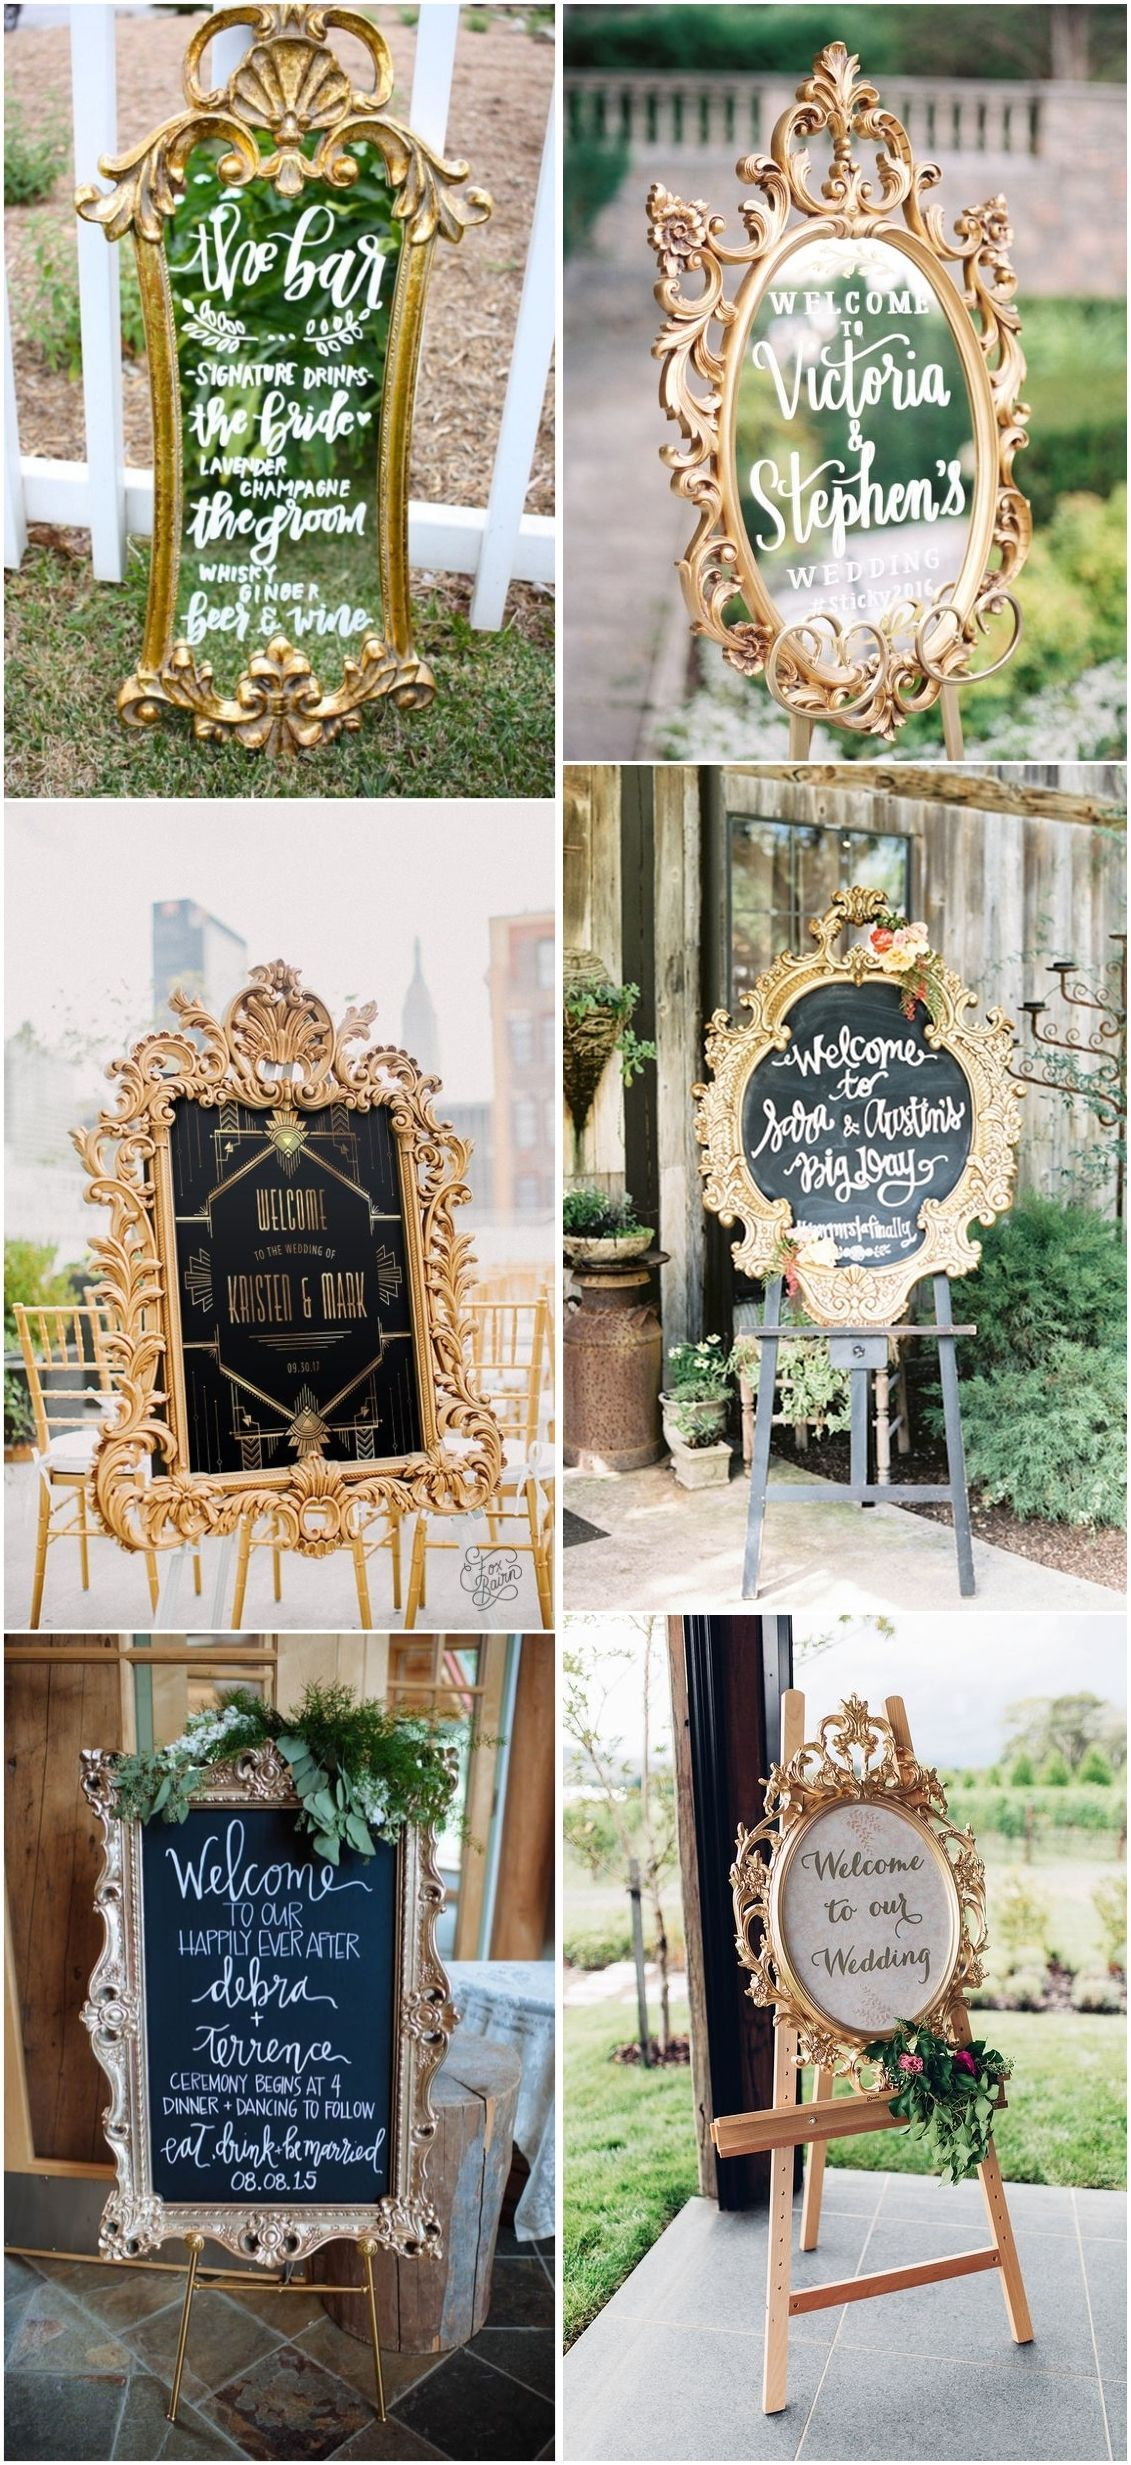 unique wedding signs weddings weddingideas vintage